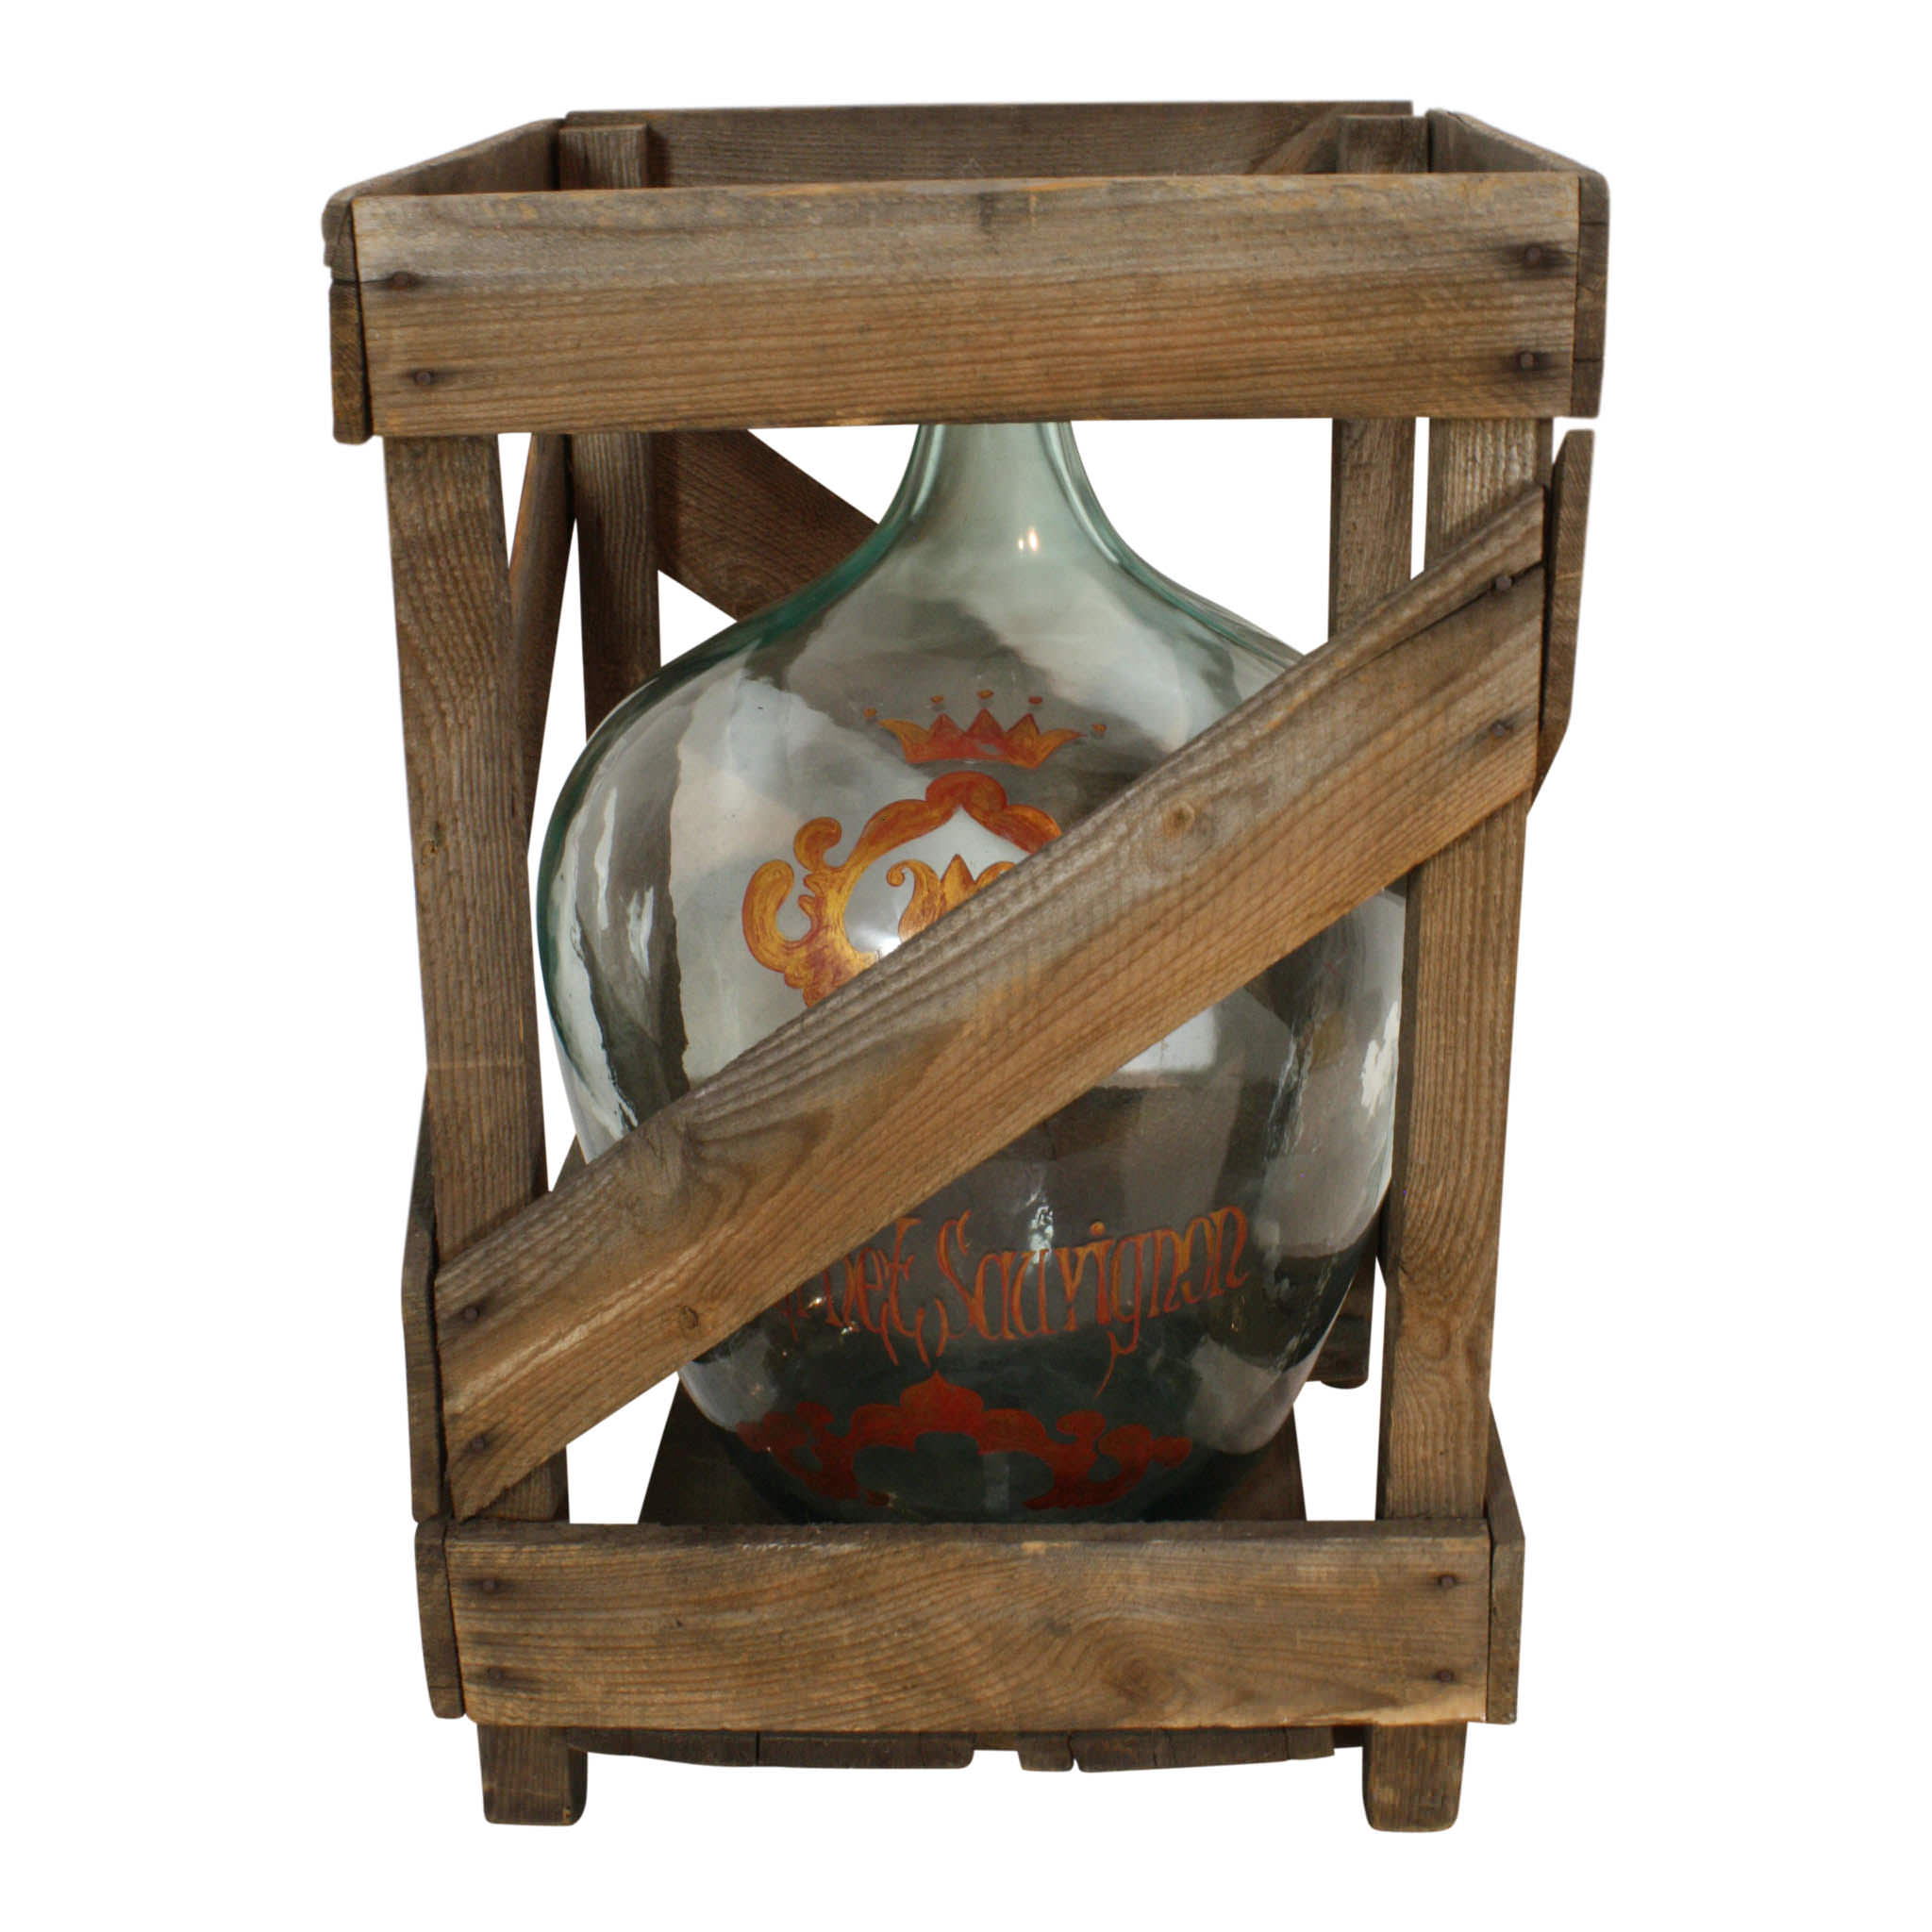 Painted Cabernet Sauvignon Demijohn in Wood Crate